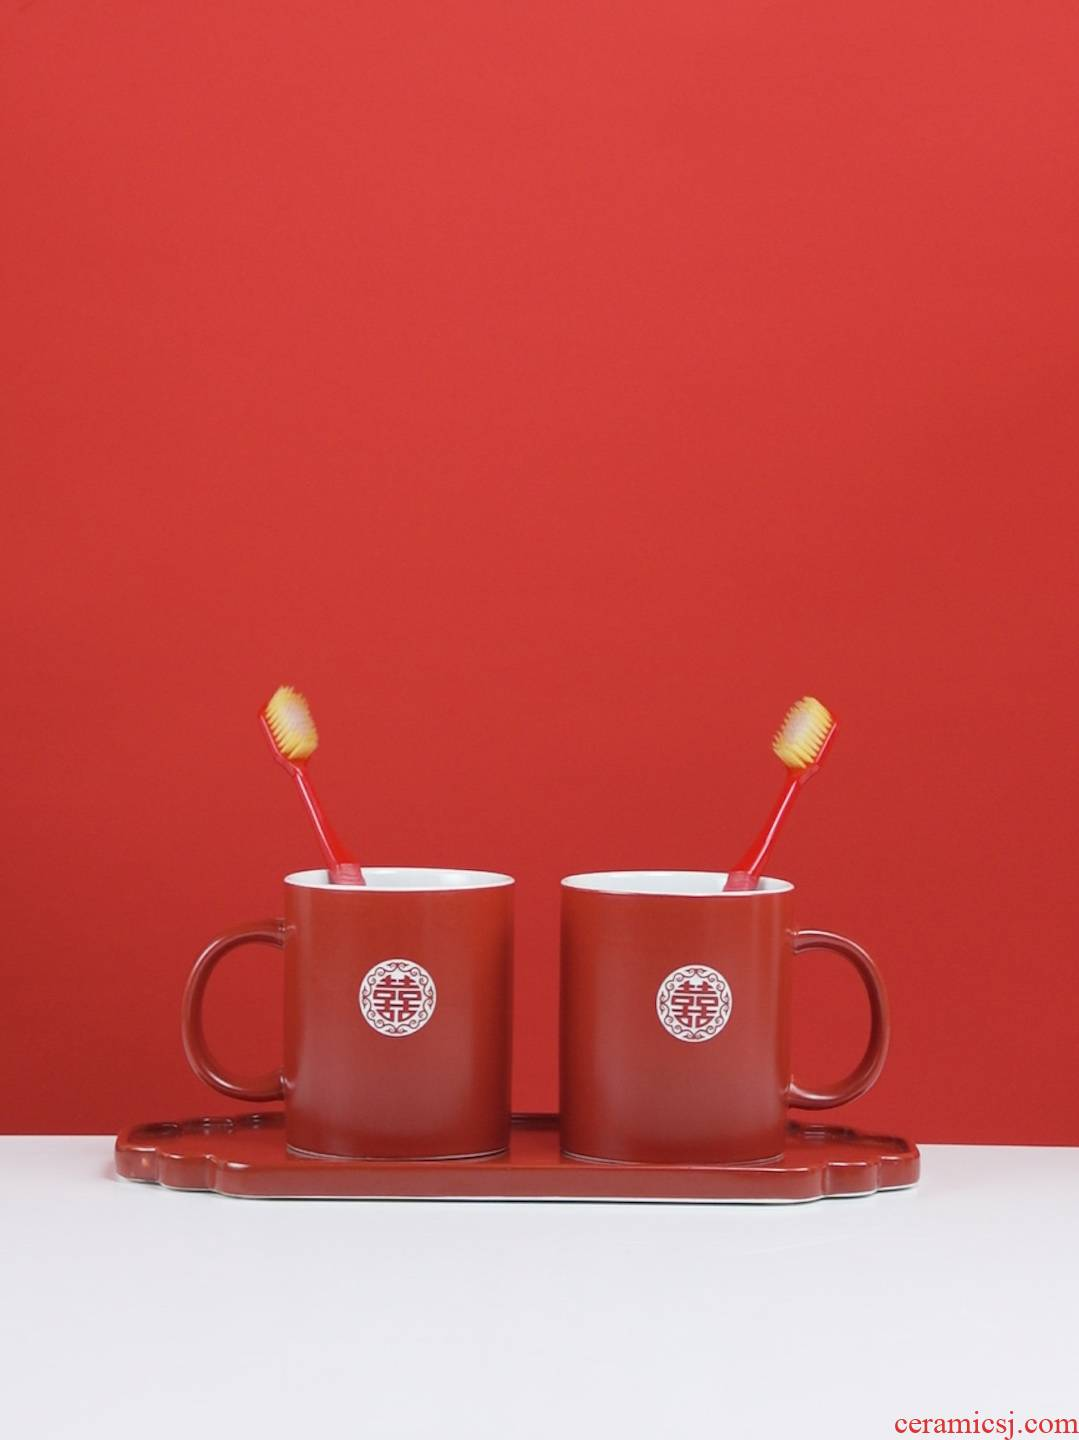 I swim wedding custom ceramic gargle a pair of lovers suit creative YaGang marriage red toothbrush cup